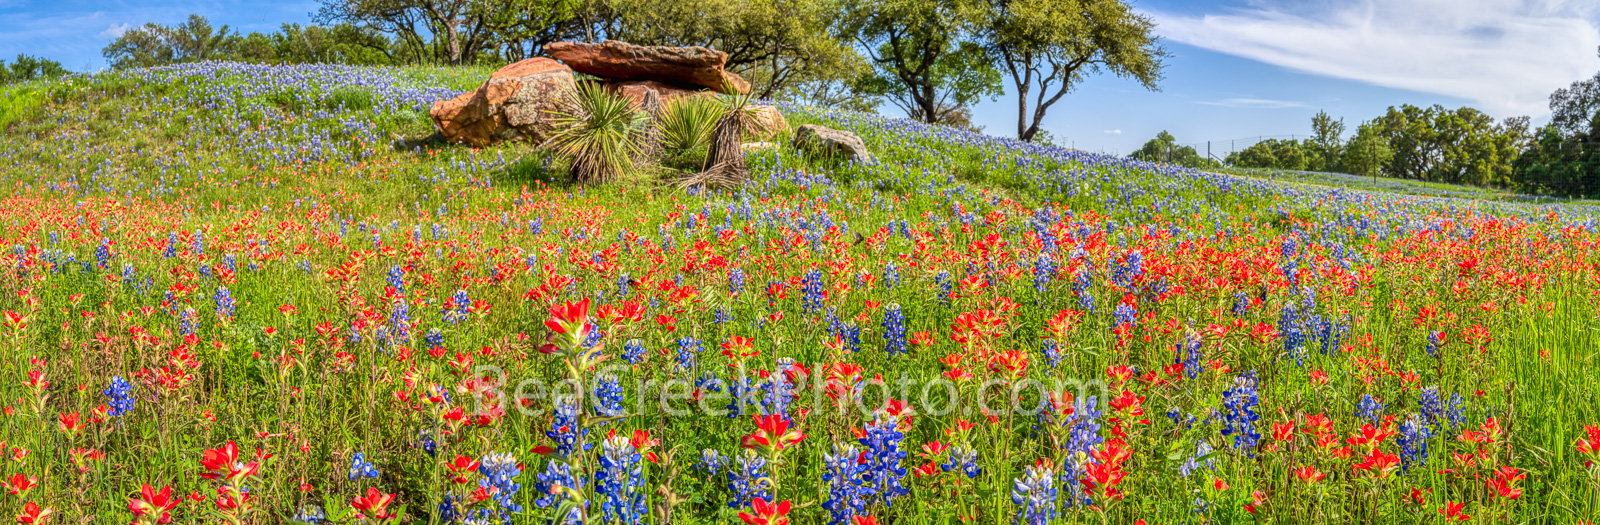 Rural Texas Wildflowers Pano - I capture these wonderful bluebonnets and indian paintbrush in the Texas hill country on a nice...